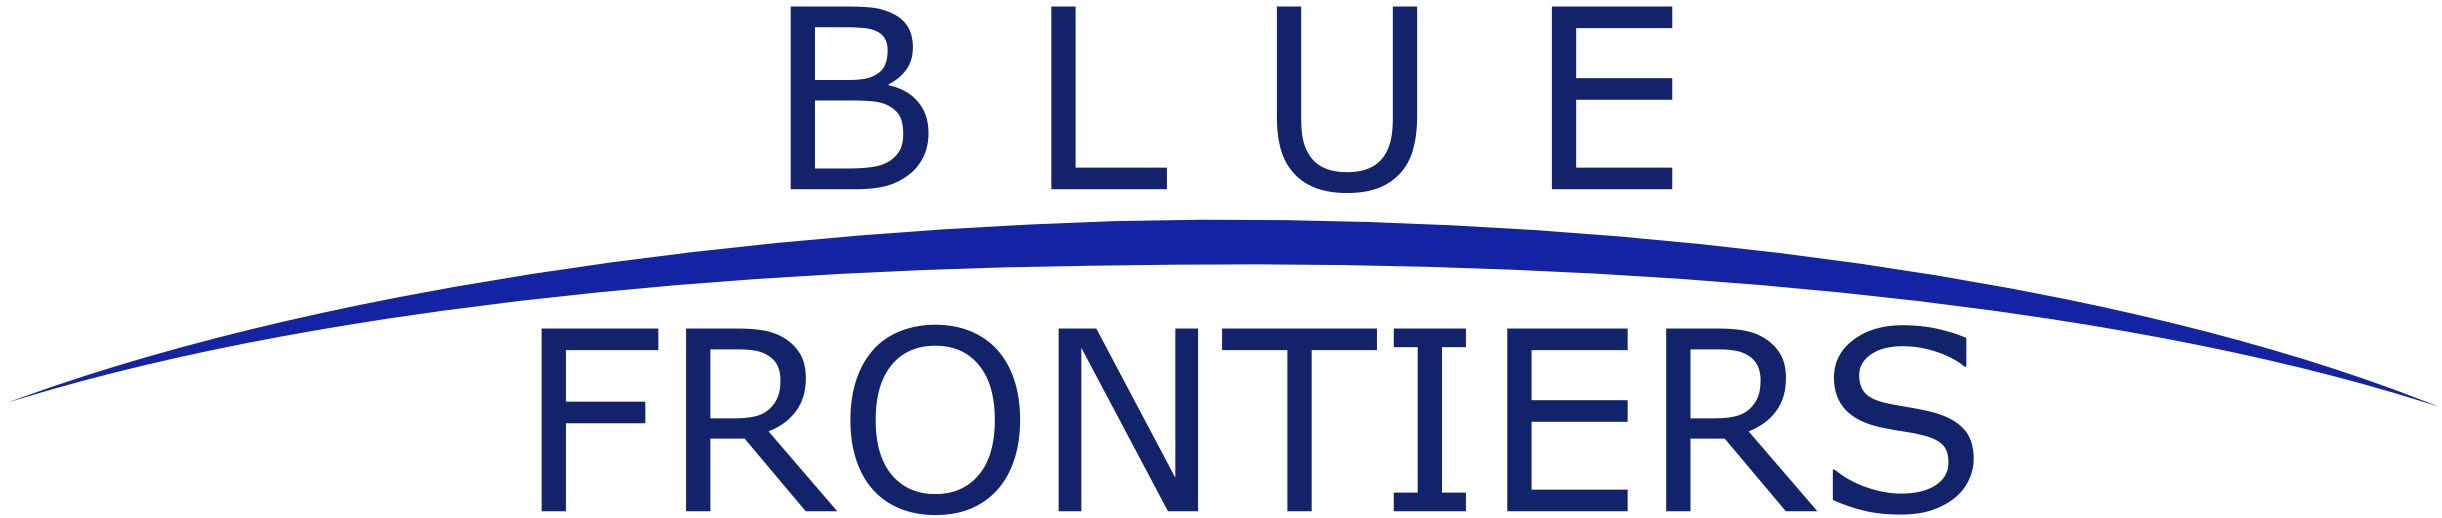 Blue Frontiers logo